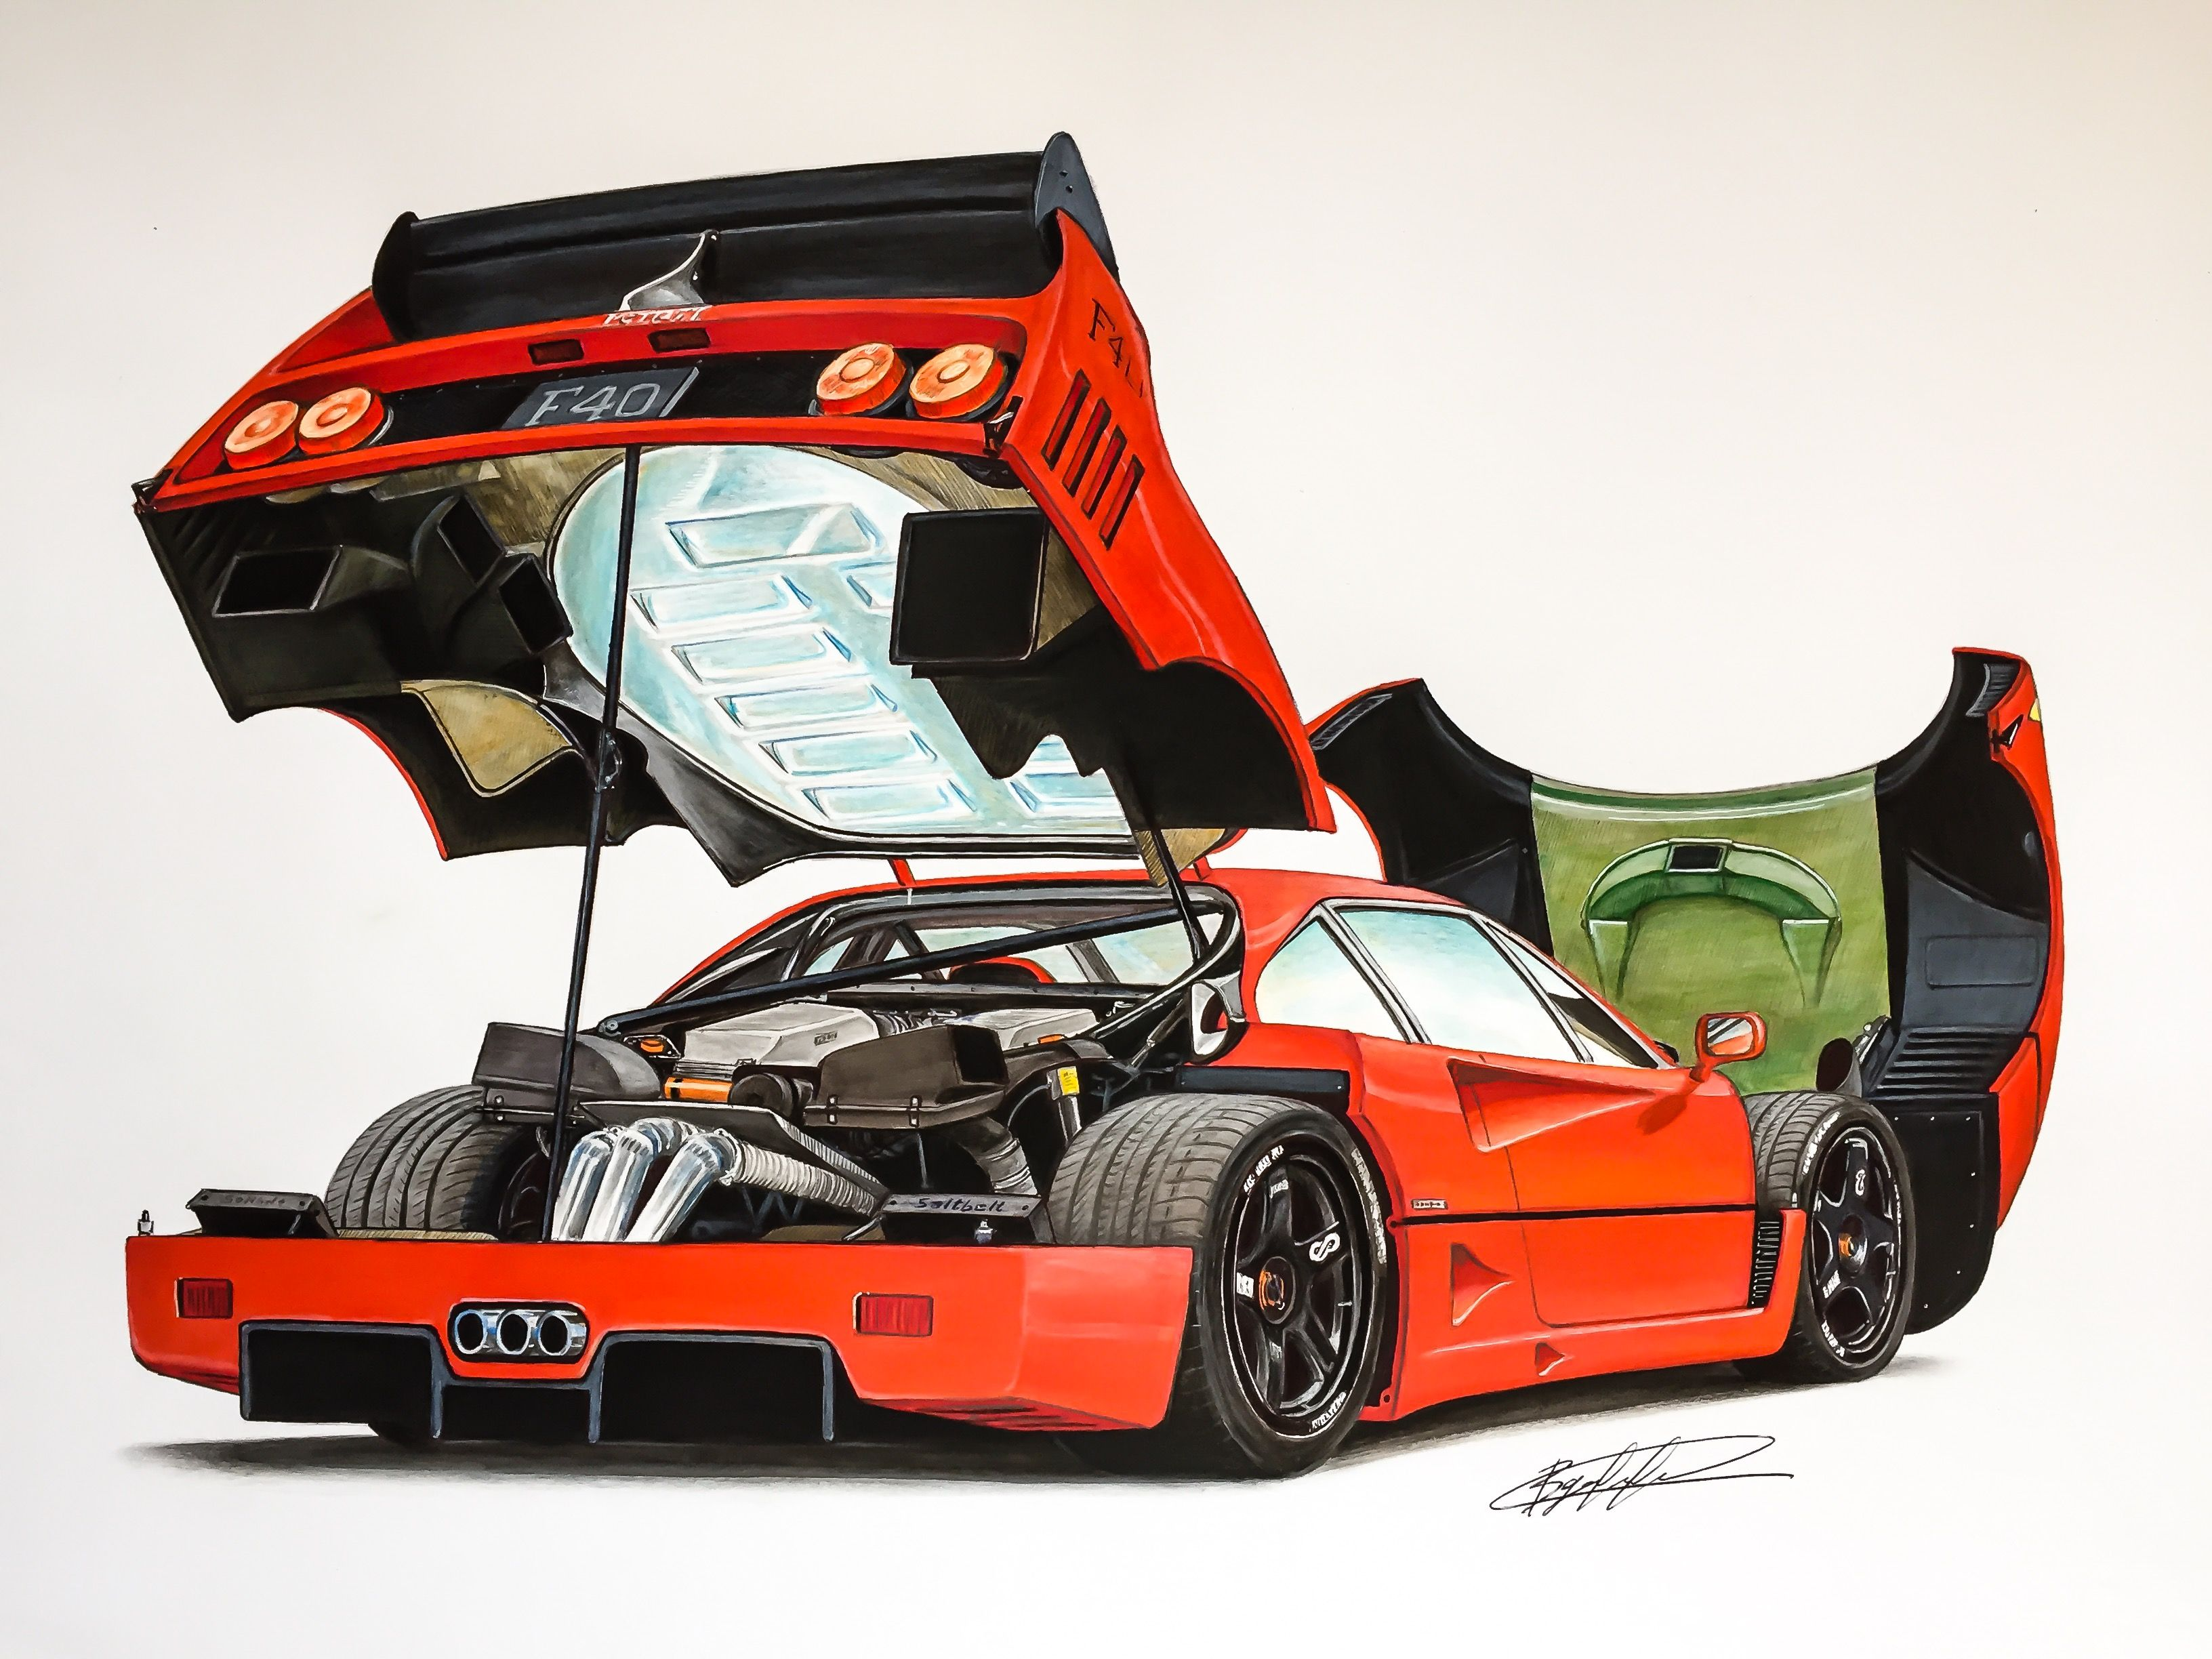 Ferrari Lightweight Lm Wing Drawing Supercar By Filo